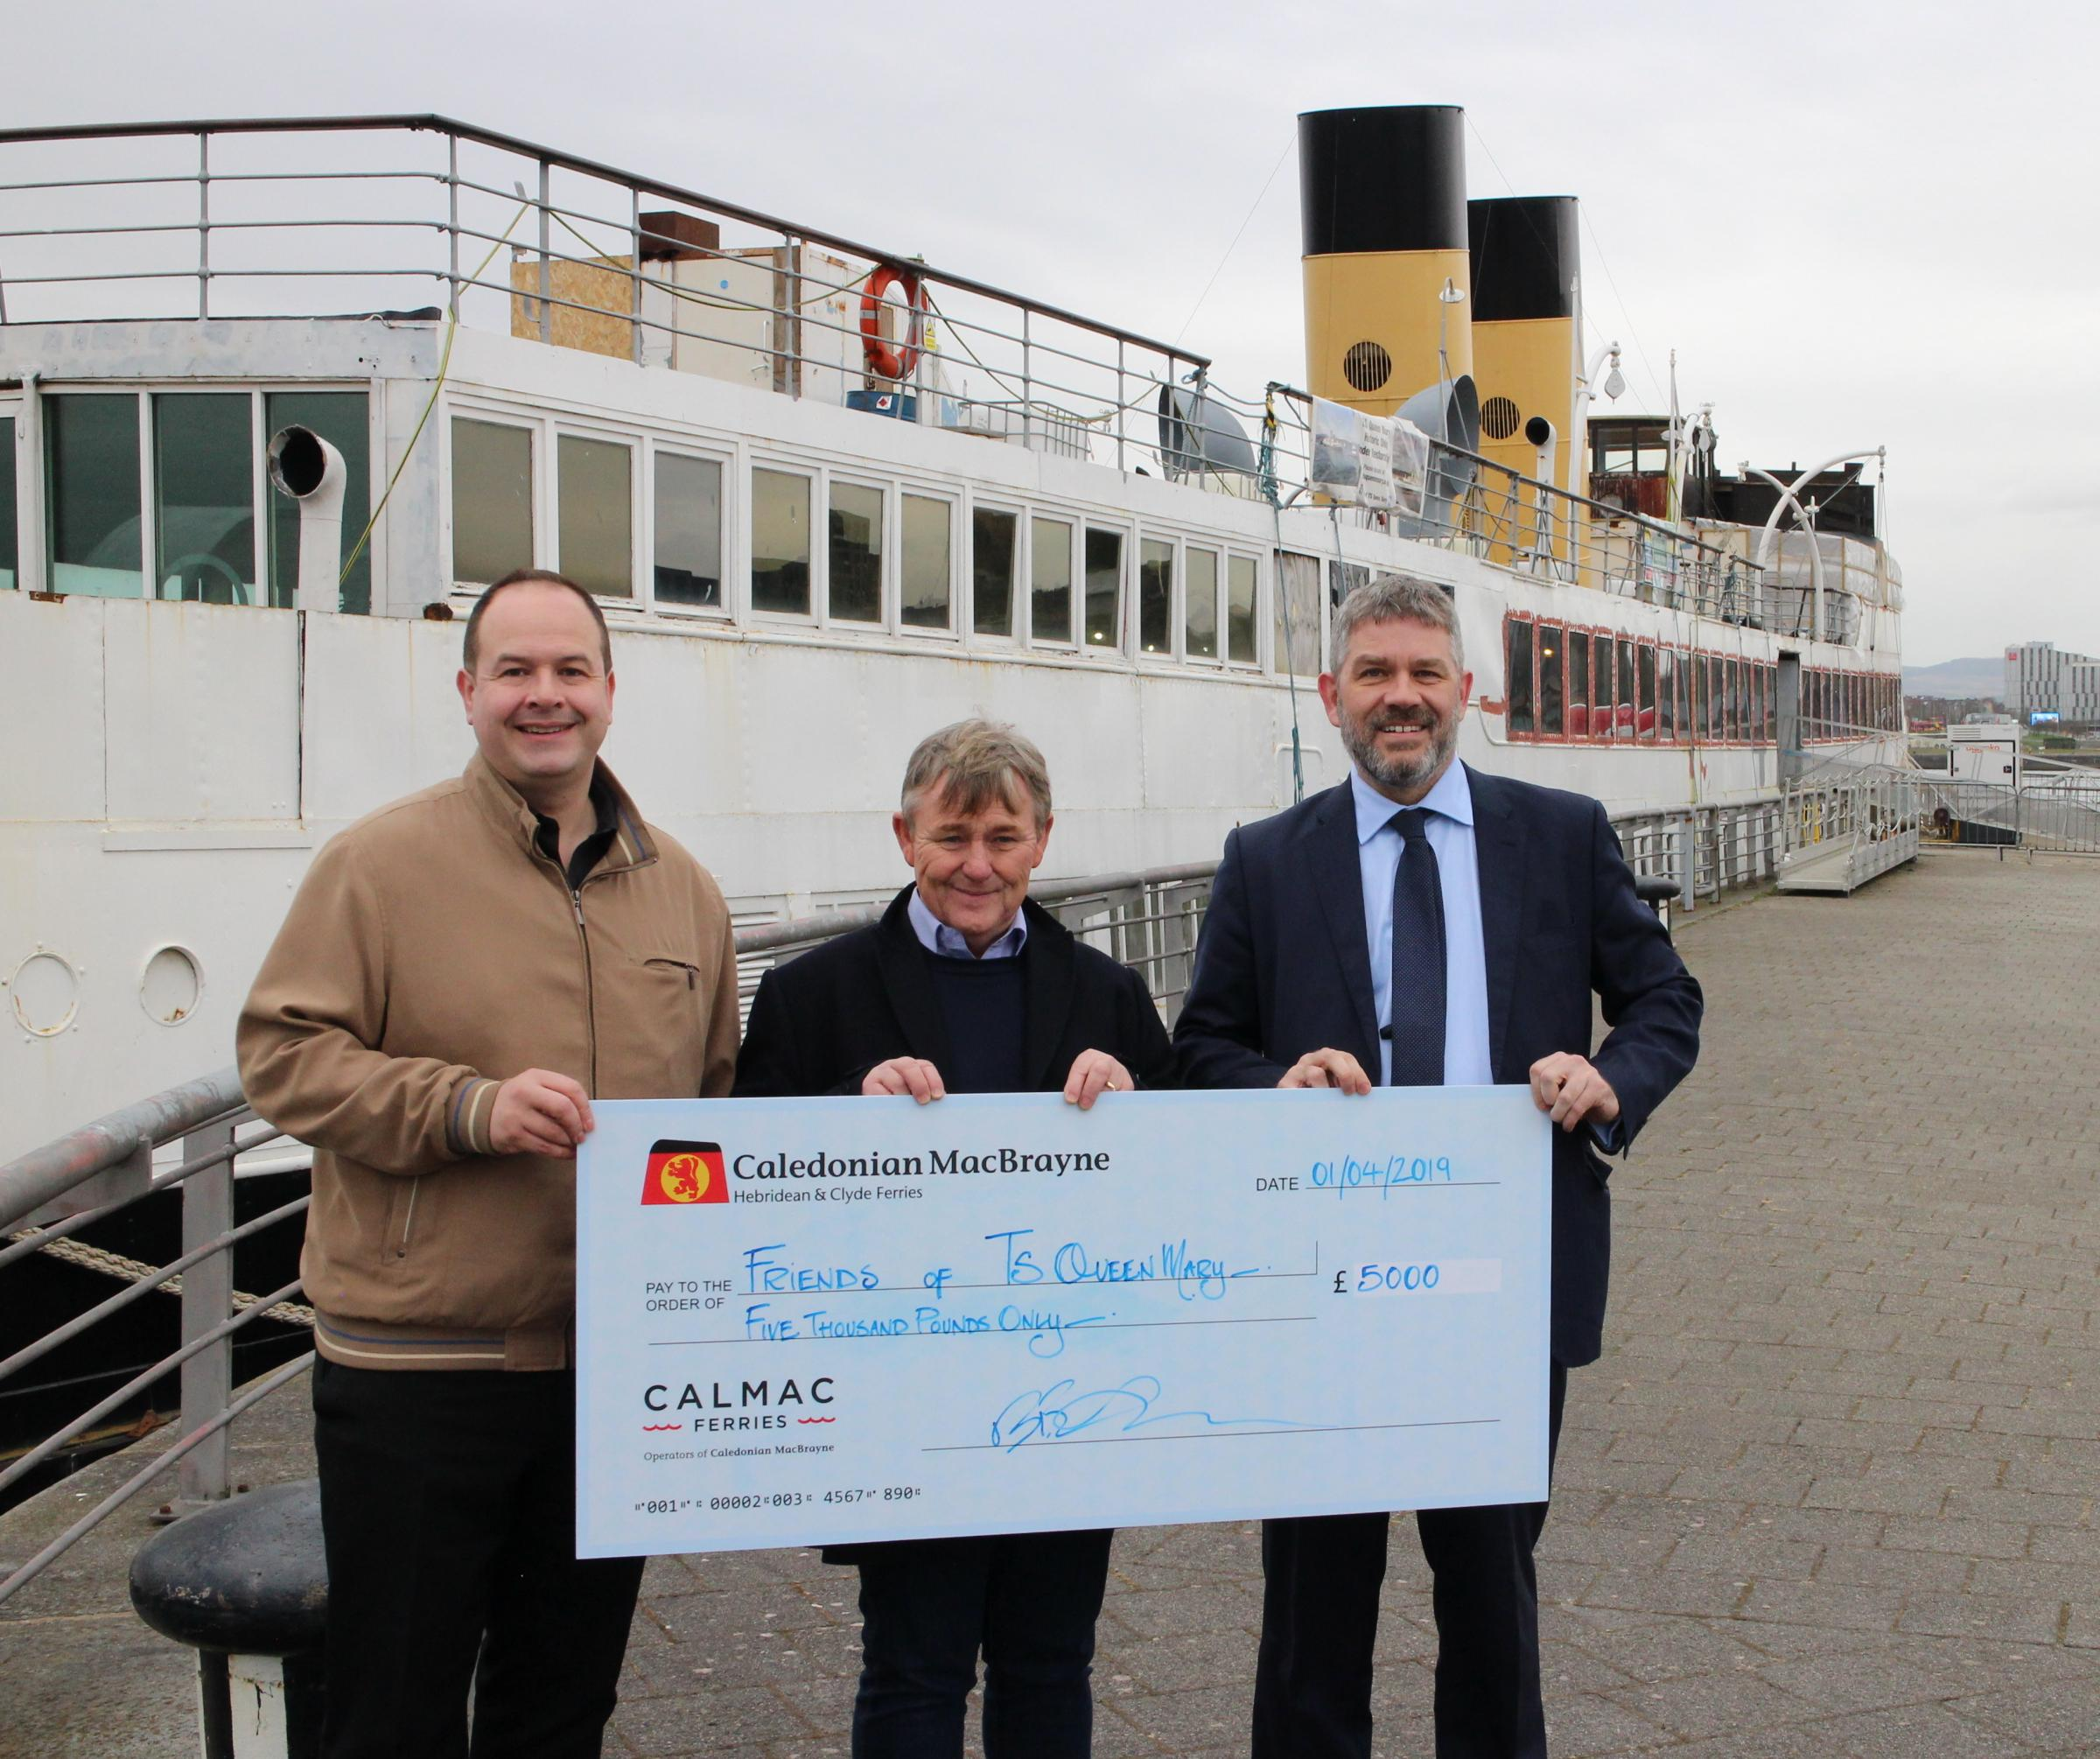 Cheque presentation:  CalMac's Director of Community and stakeholder Engagement, Brian Fulton (R) presents the cheques to Friends of Queen Mary trustees, Iain Sim (L) and Captain Calum Bryce.